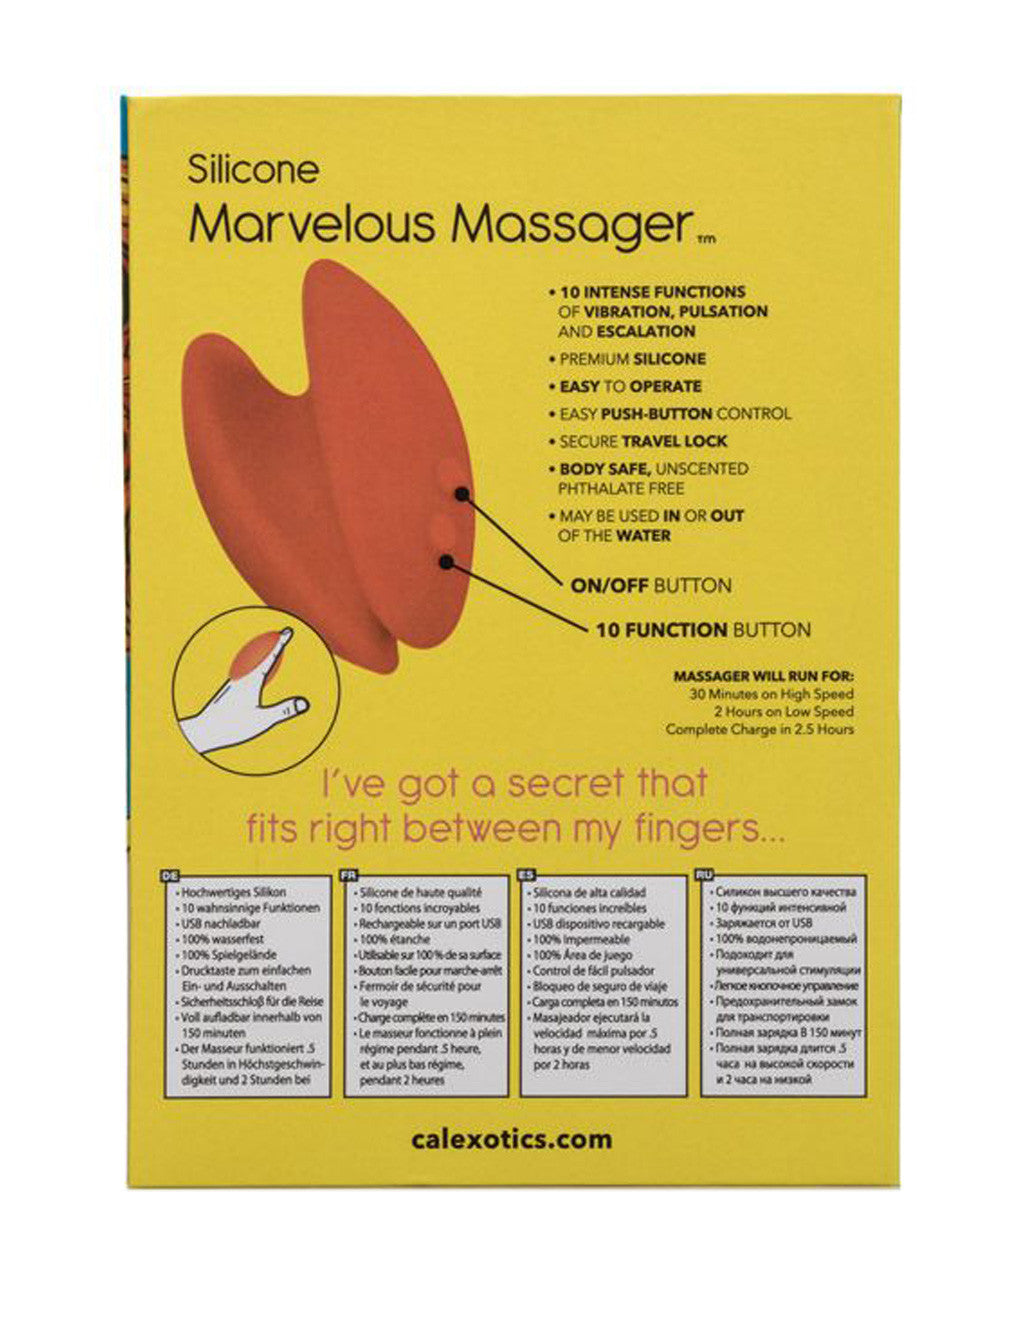 Mini Marvels Marvelous Massager Package